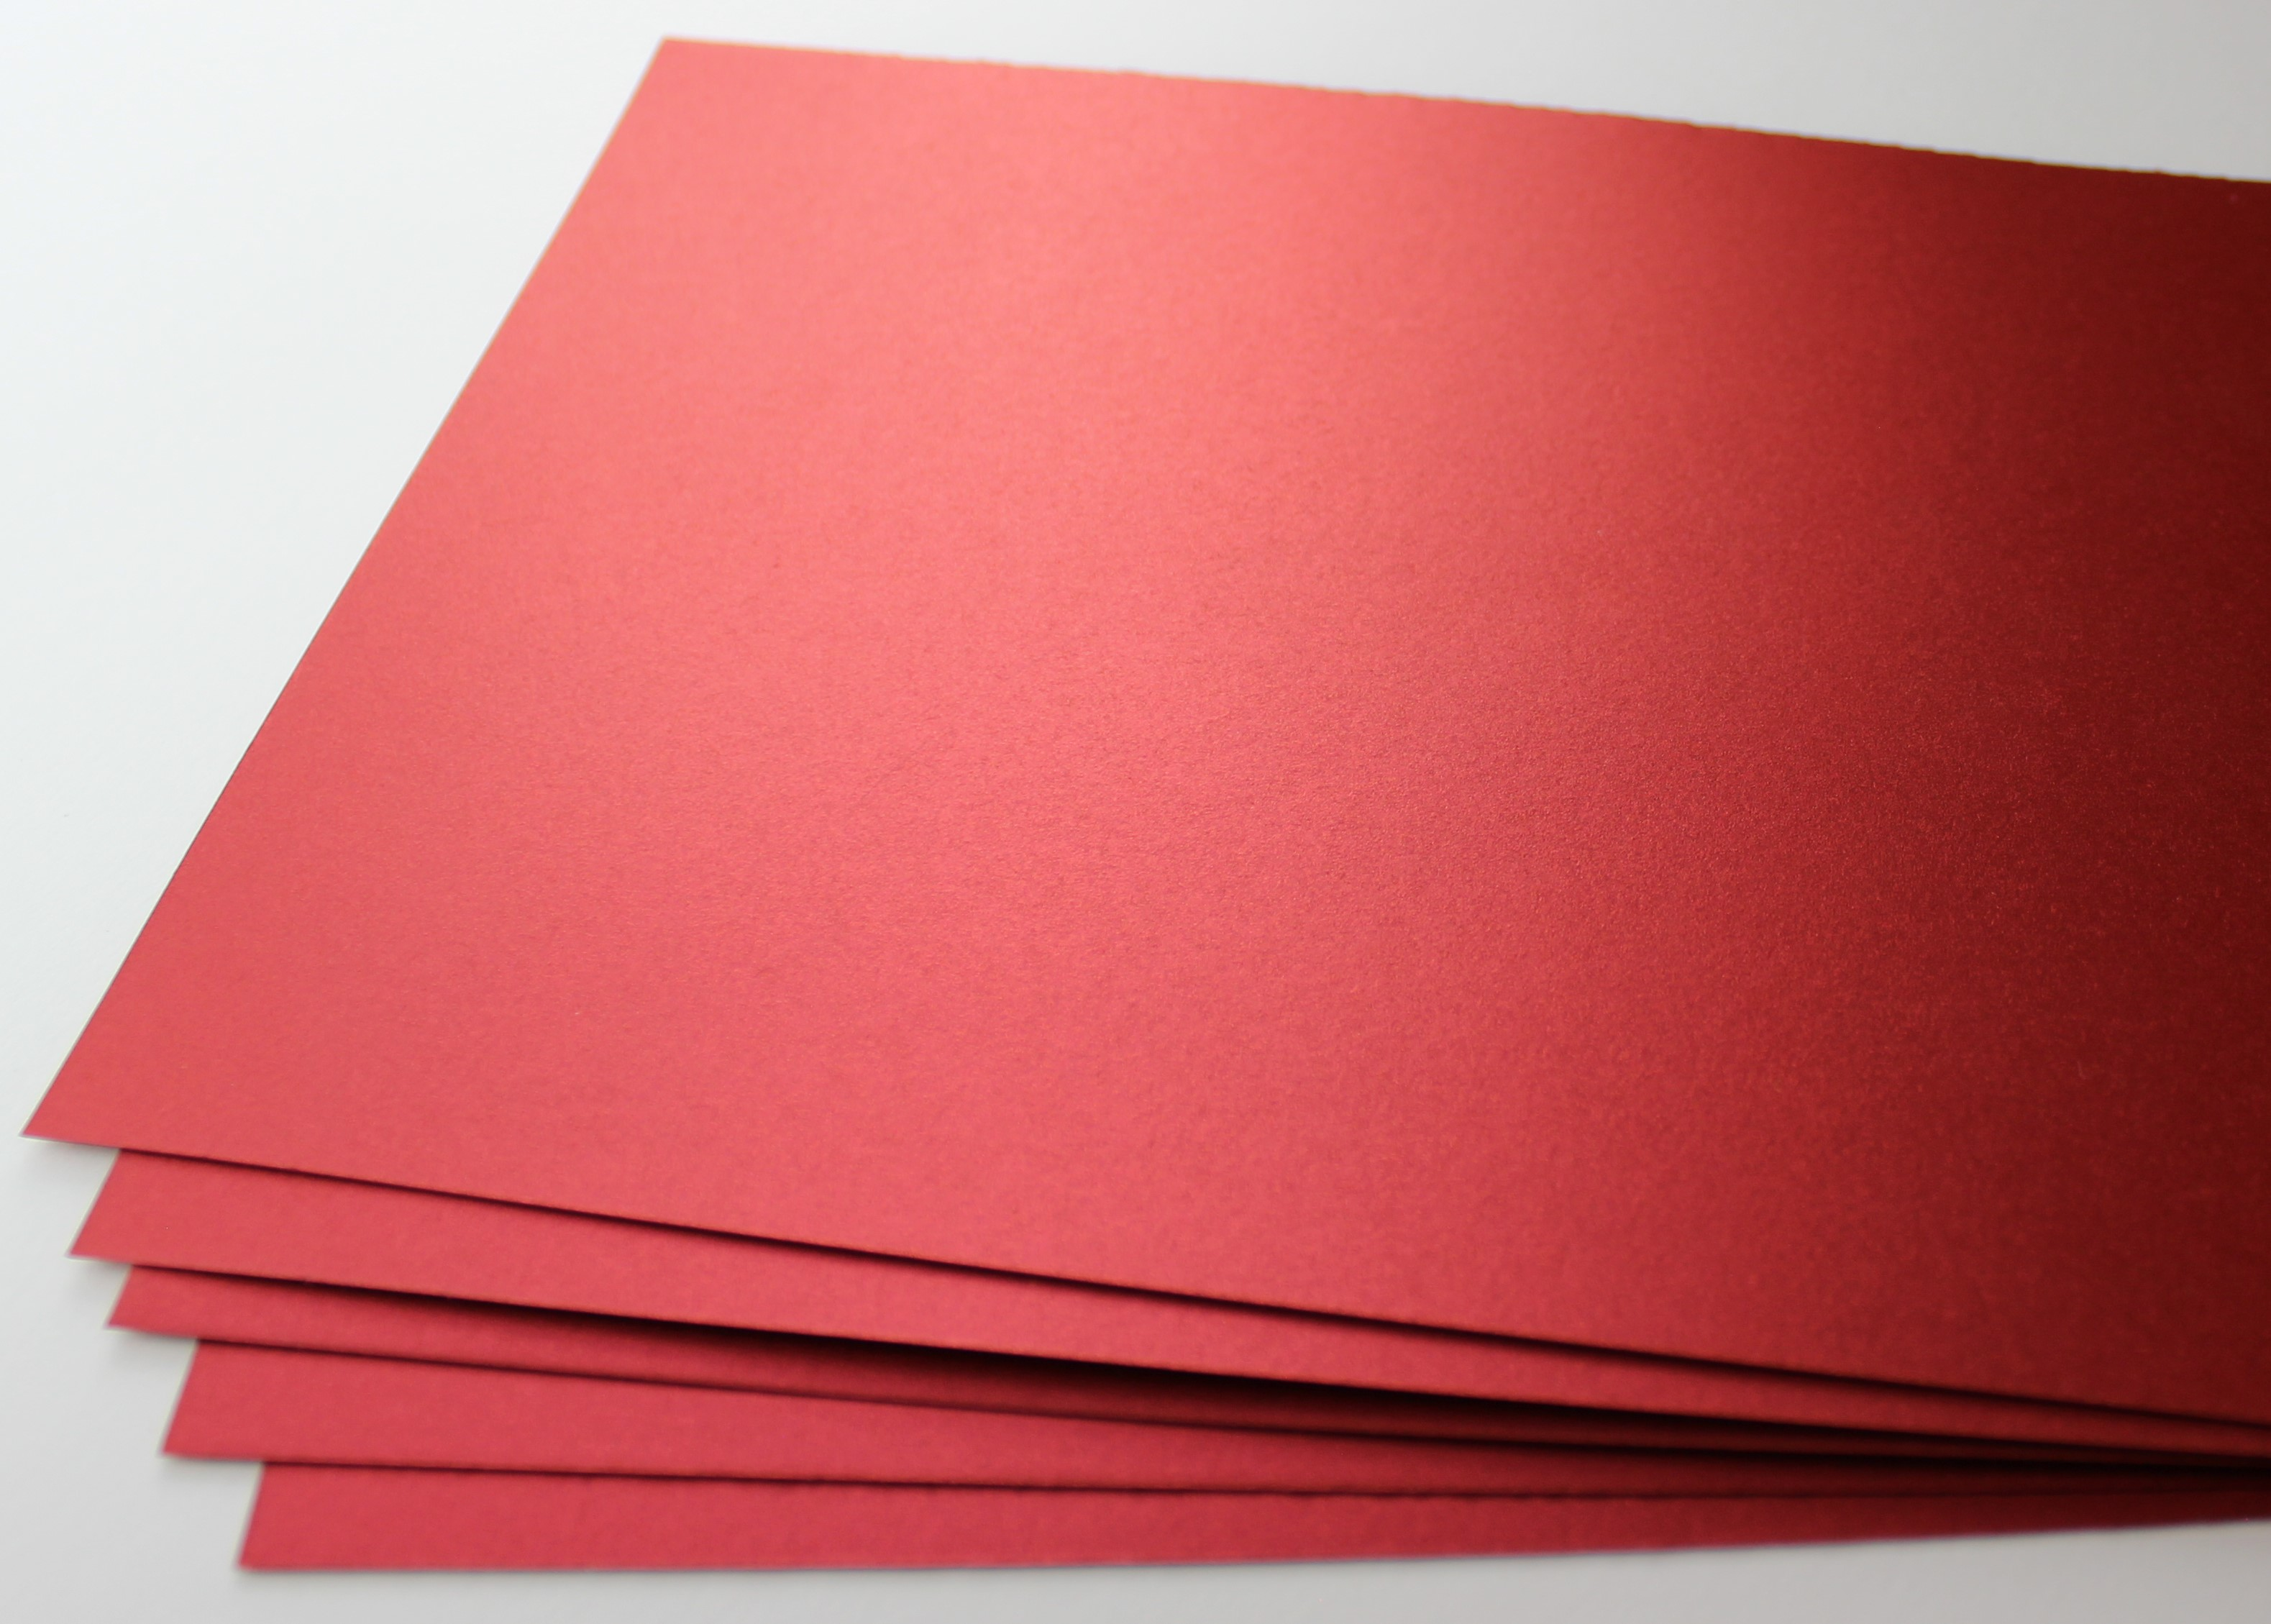 100 Blatt A3 (297x420mm) Inapa Shyne Papier 250 g/qm red diamond